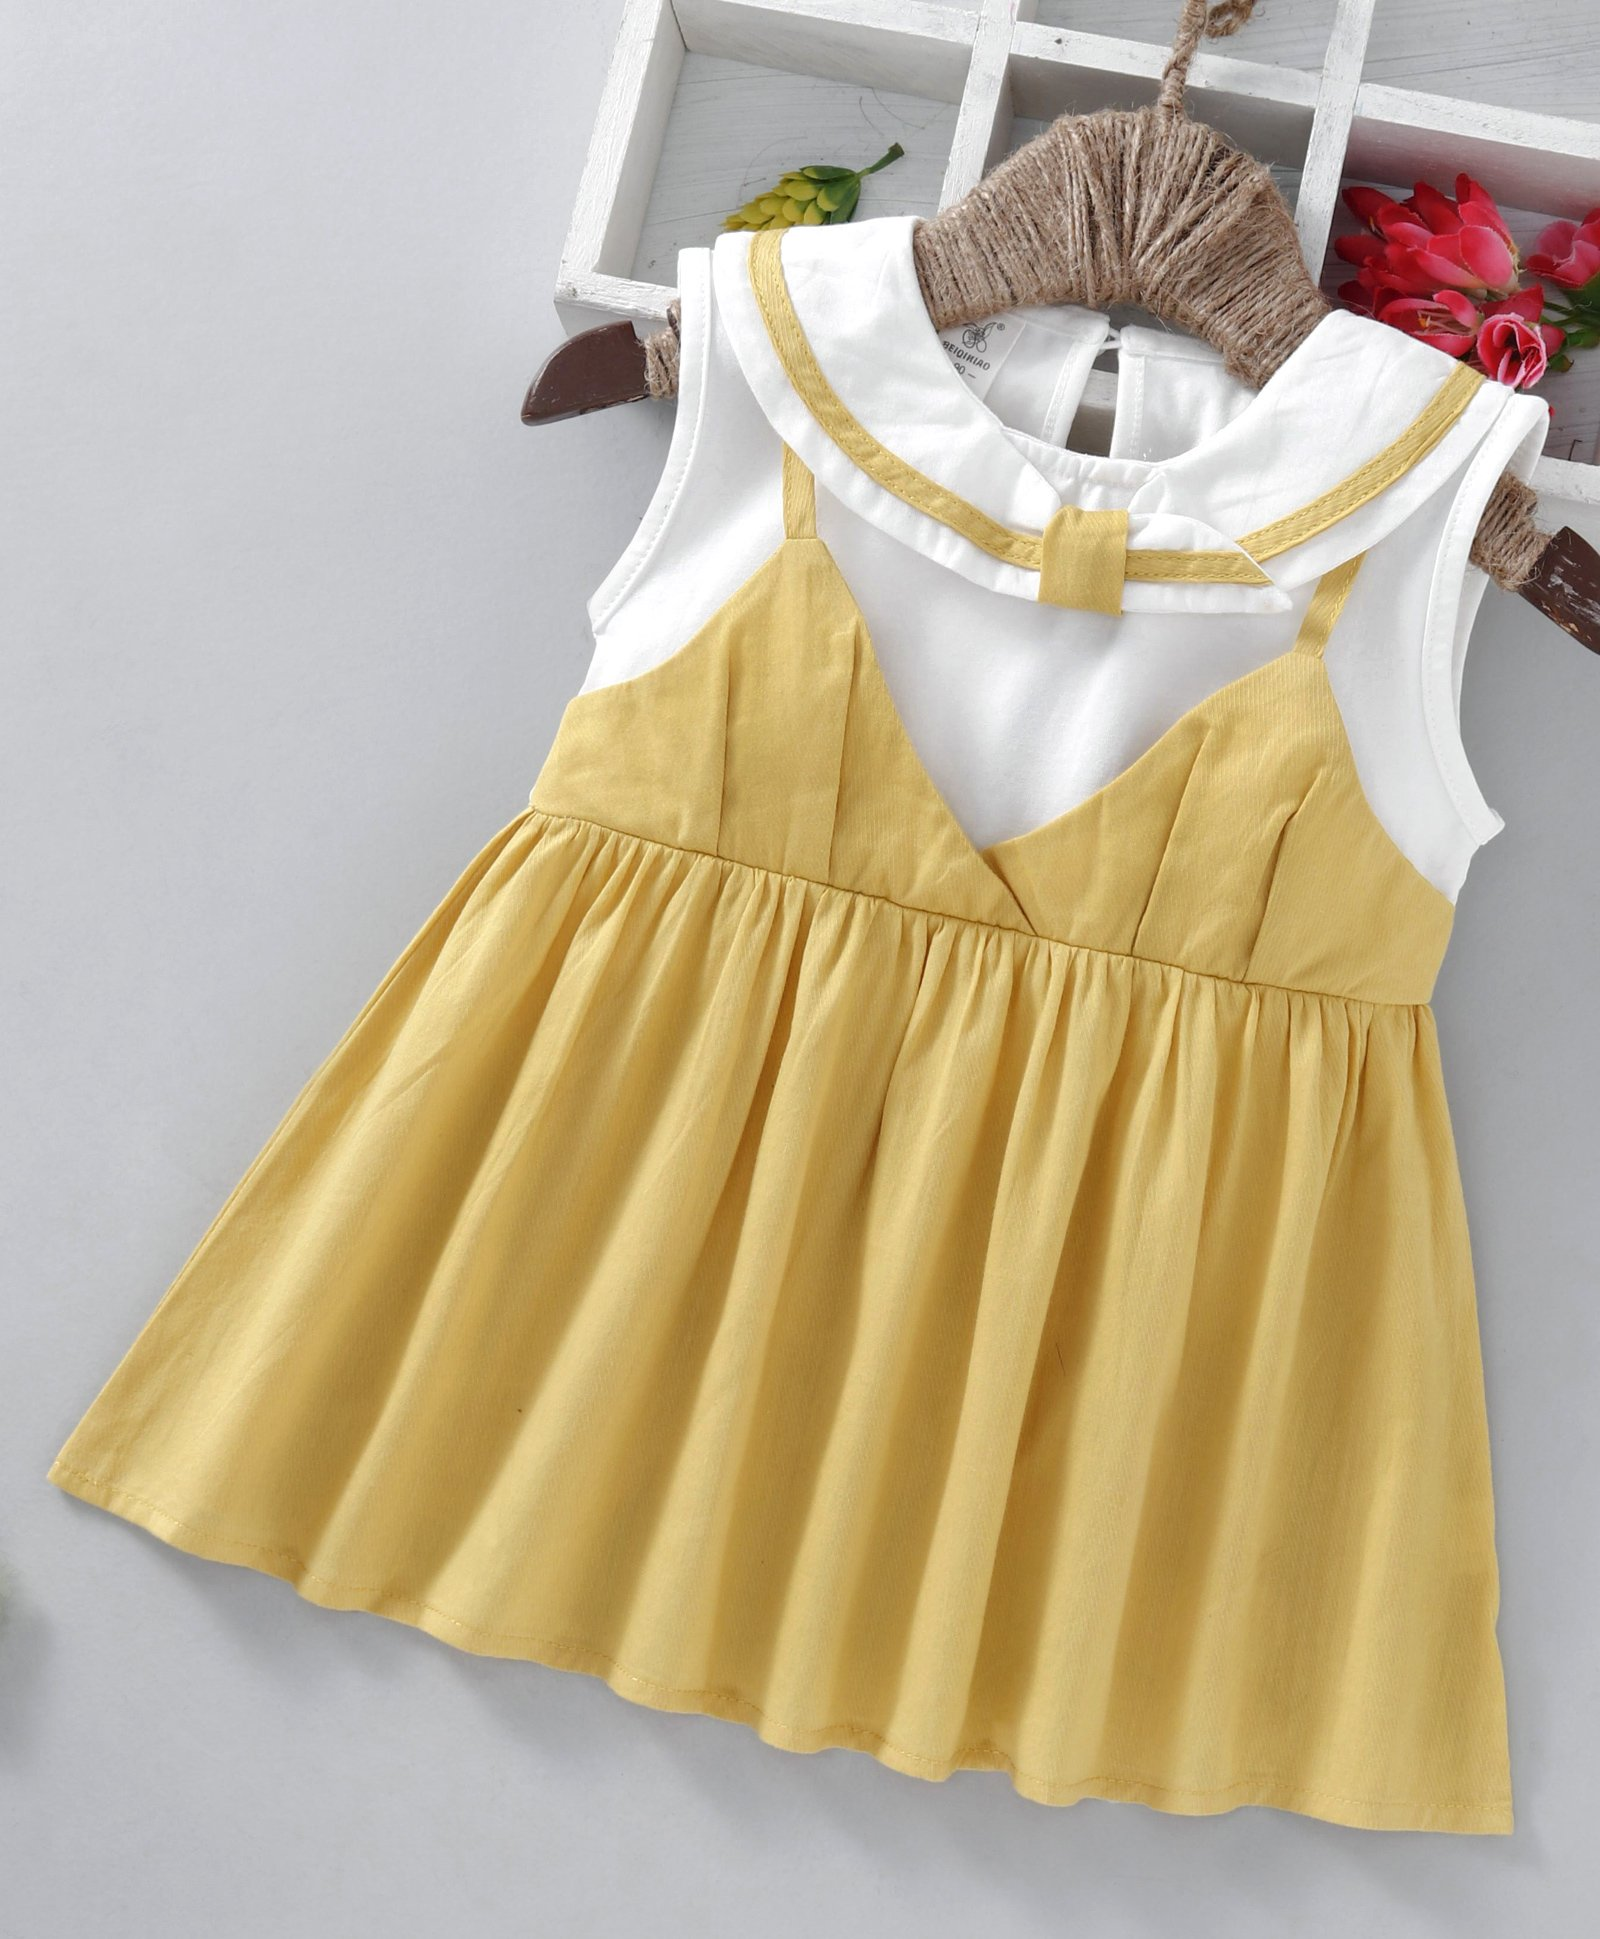 3674b30c89a32 Buy Lekeer Kids Sleeveless Sailor Collar Frock Yellow for Girls (2-3 Years)  Online in India, Shop at FirstCry.com - 2611317